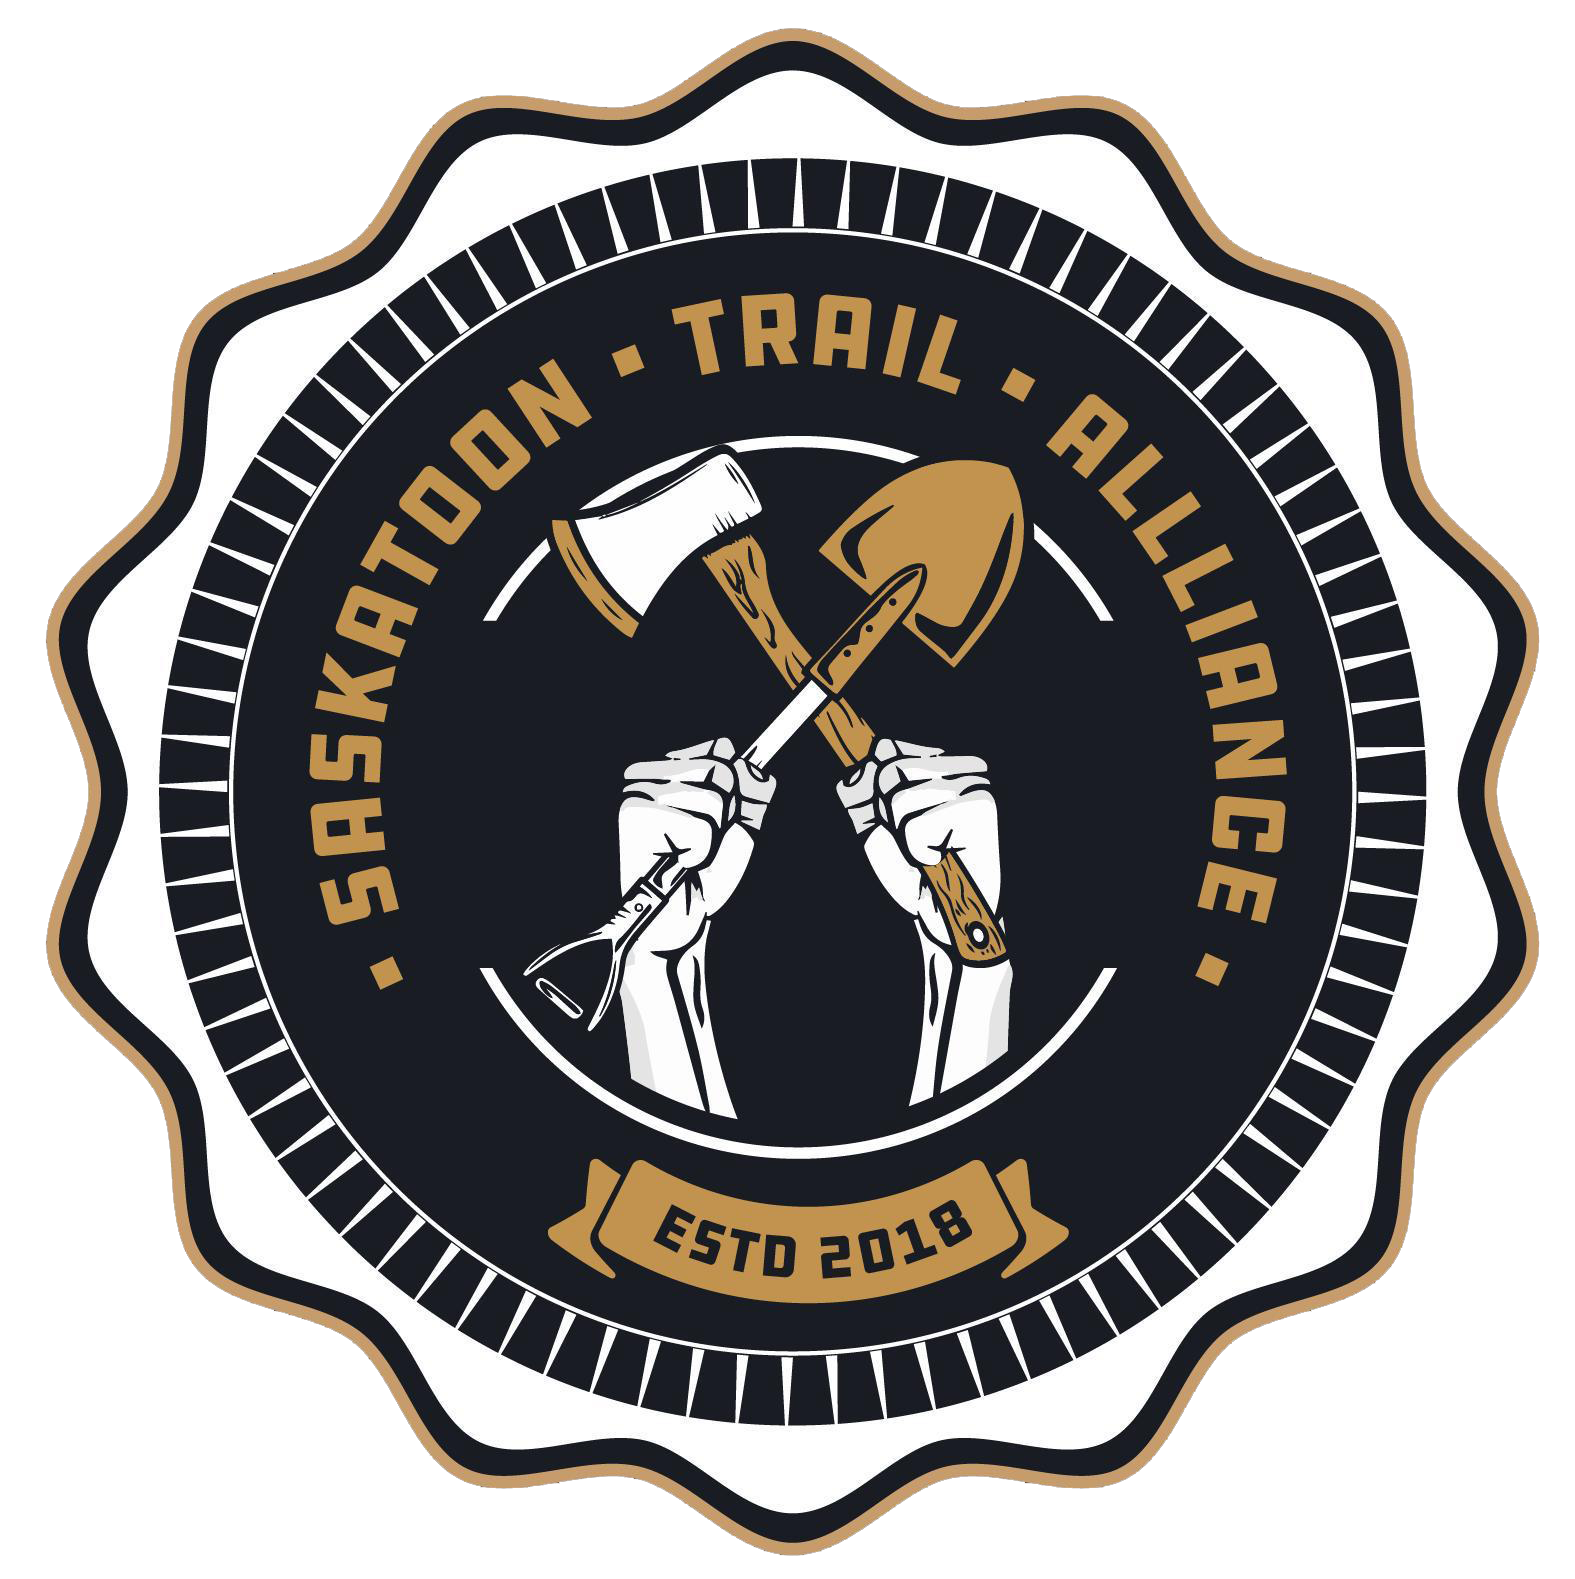 Introducing Saskatoon Trail Alliance